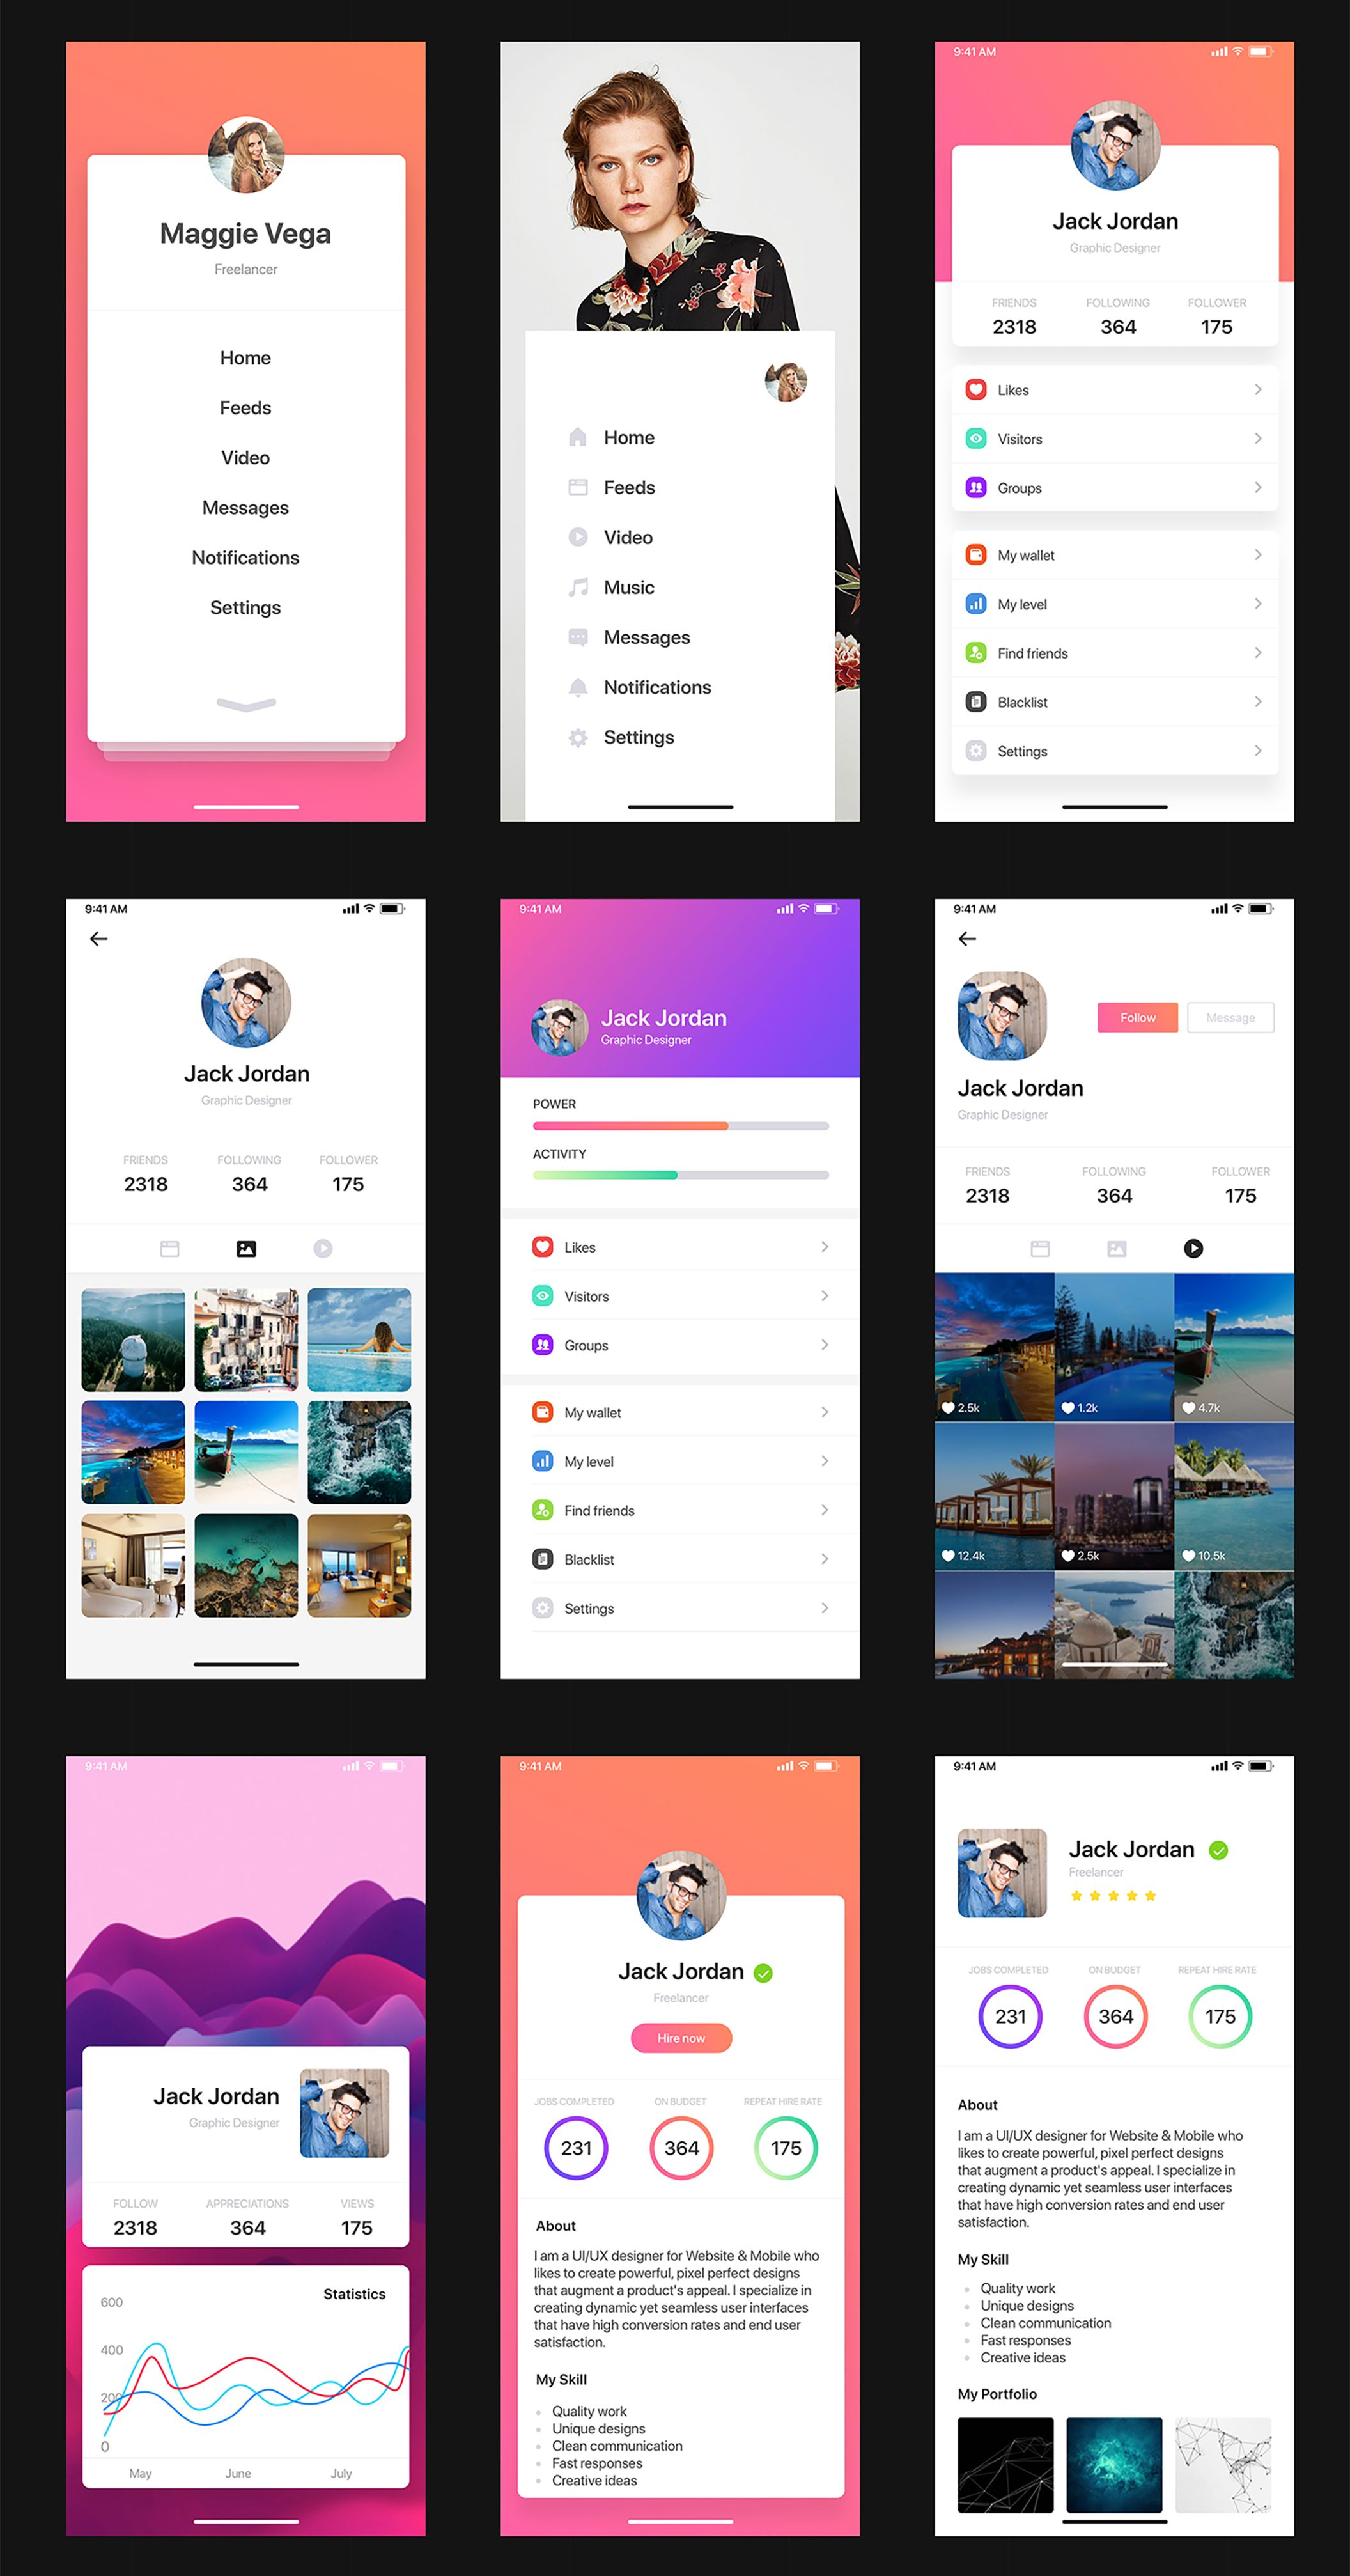 android layout download - Monza berglauf-verband com